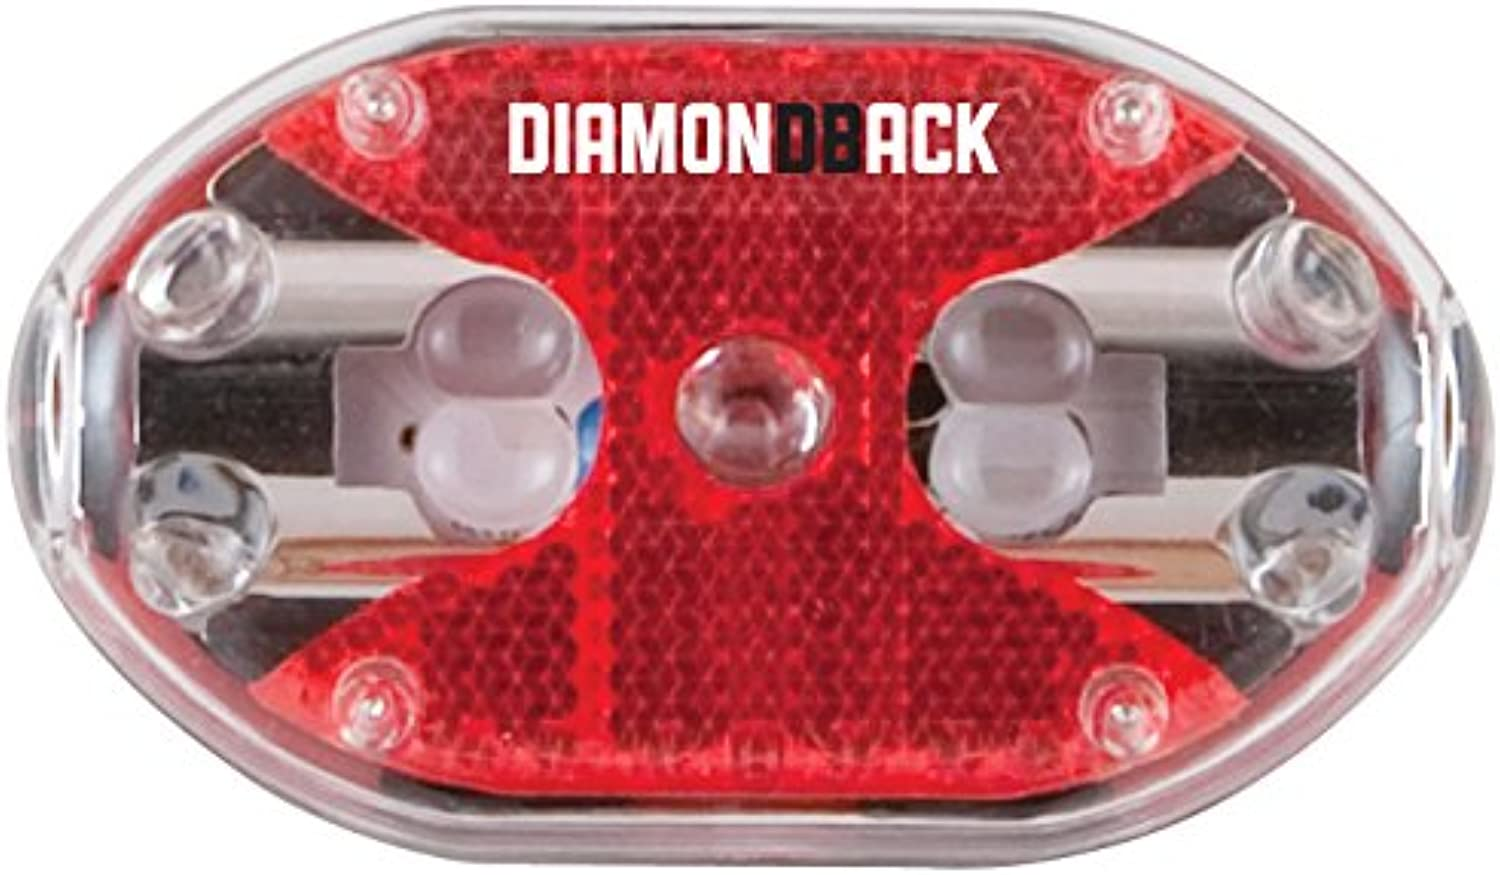 Diamondback Reflect 5 Led Bicycle Taillight, Red